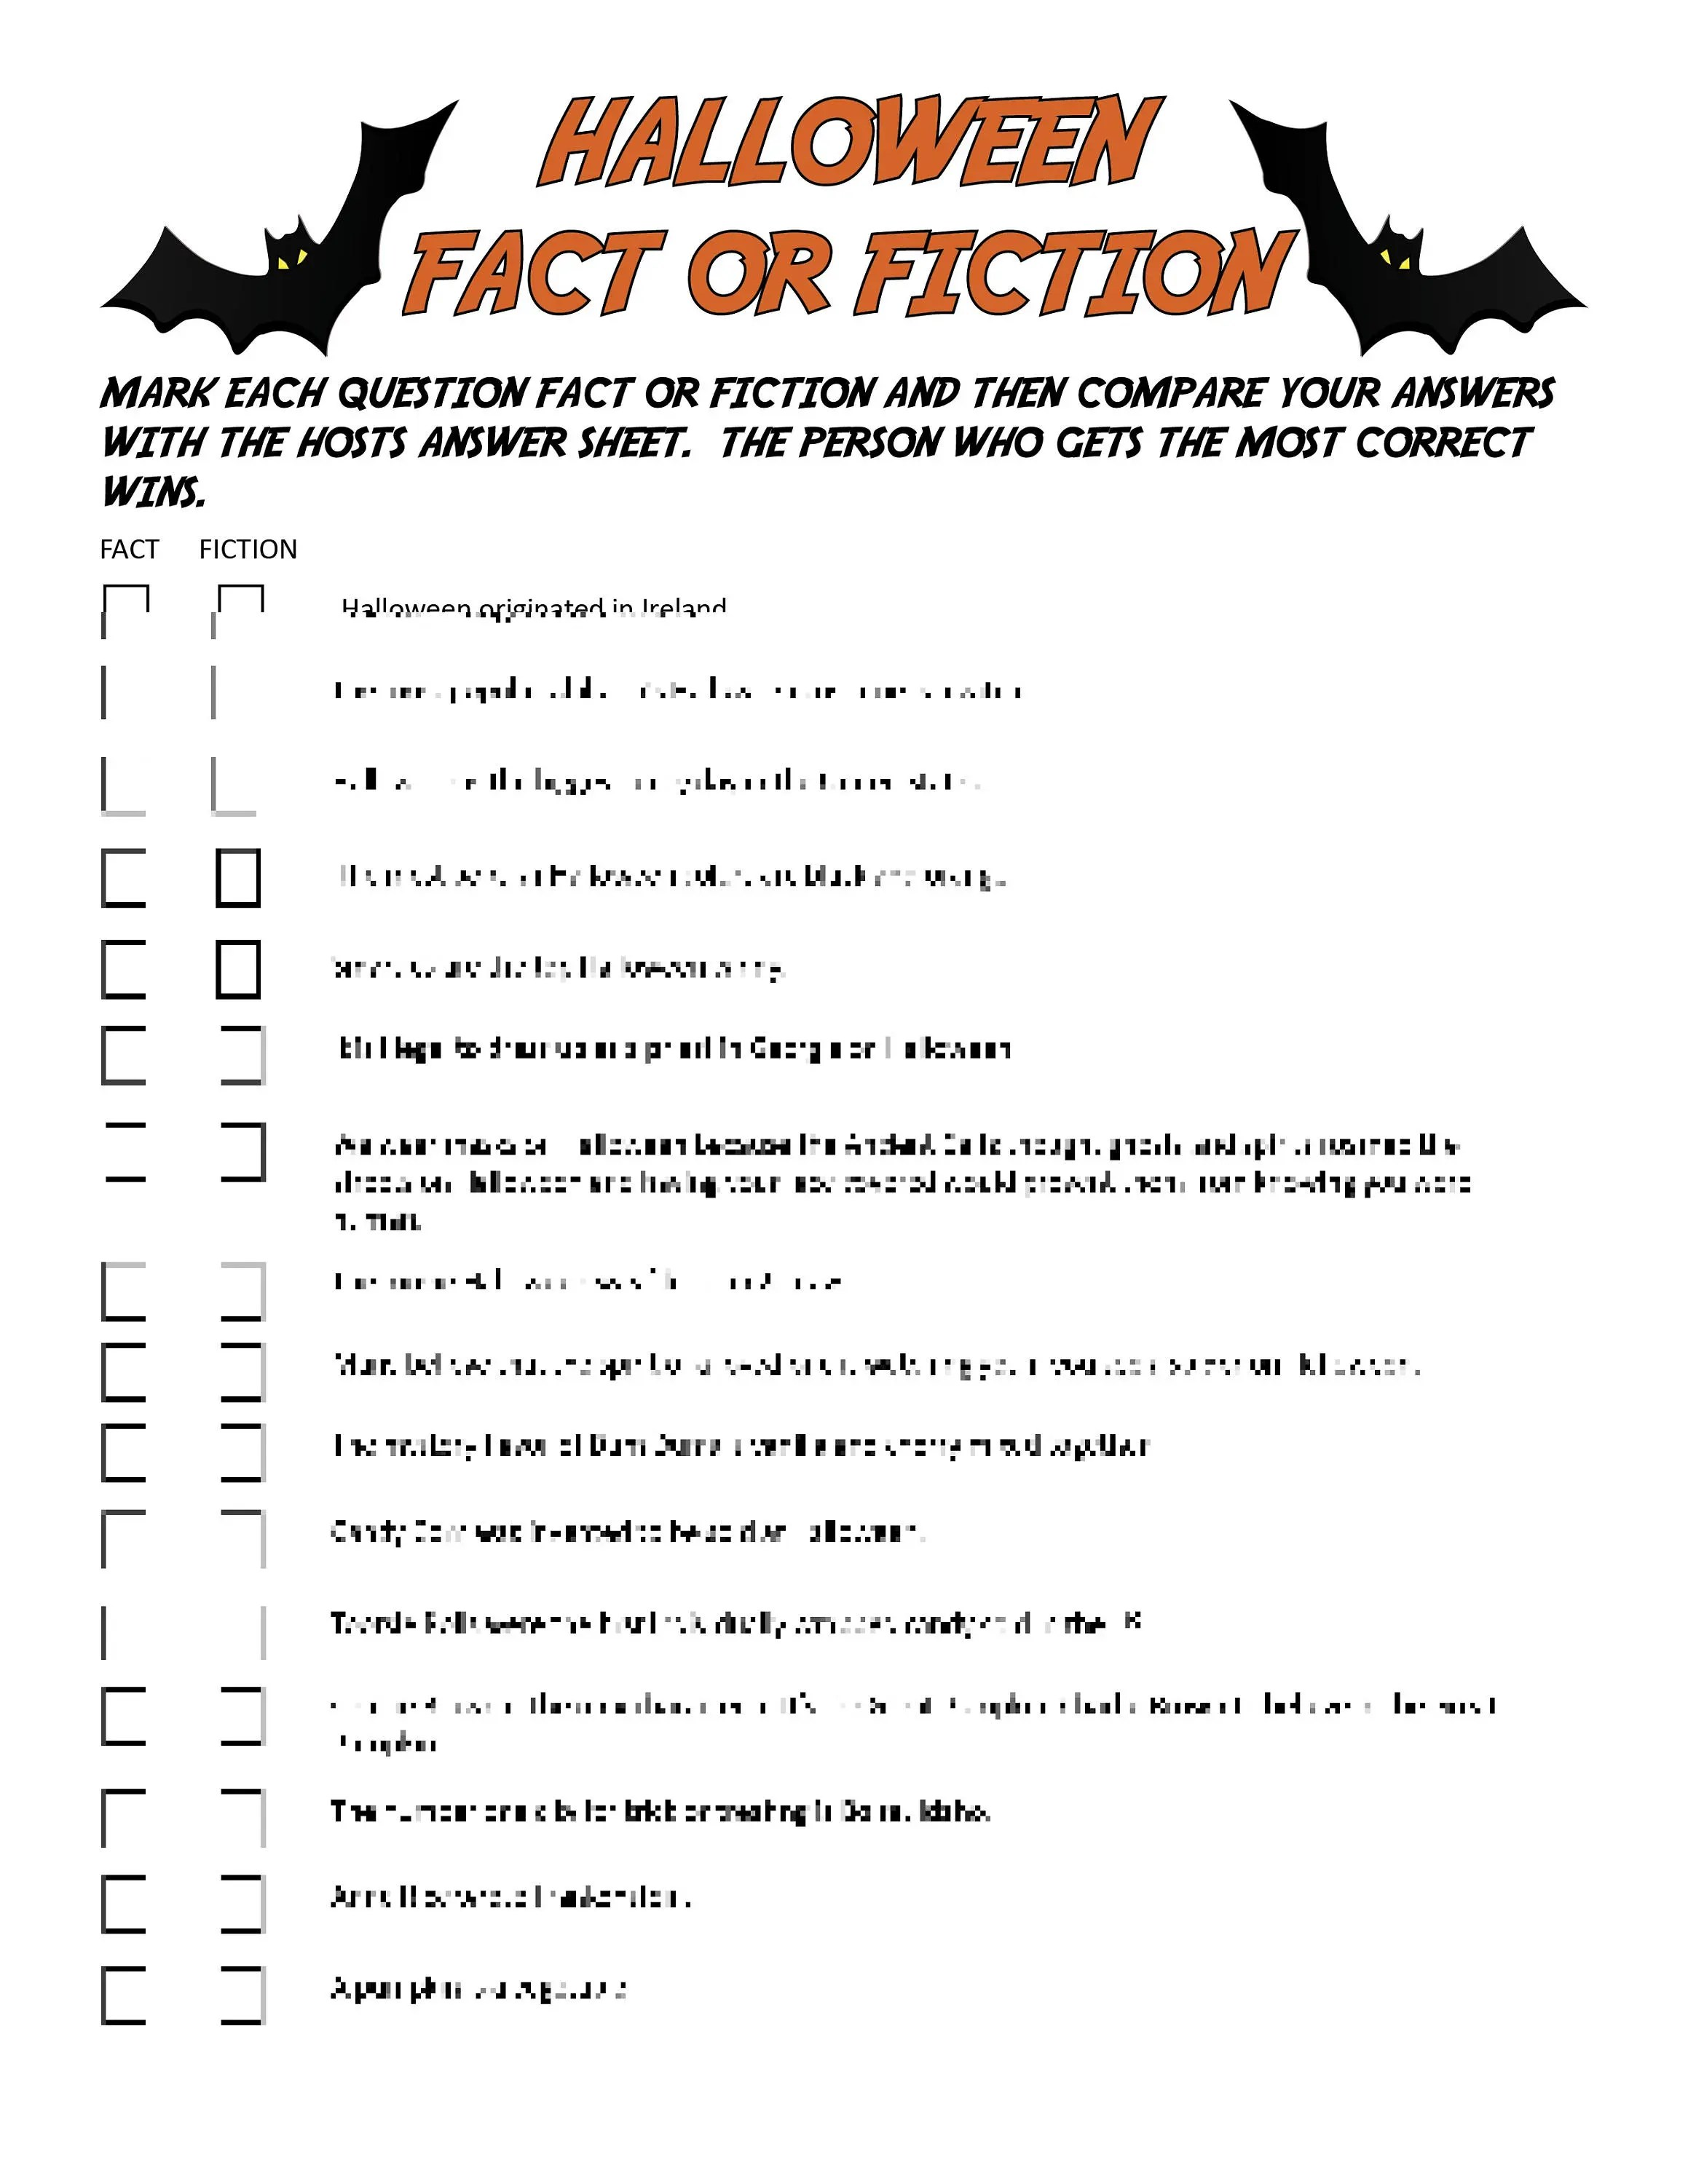 Halloween Fact Or Fiction Digital Download Trivia Game